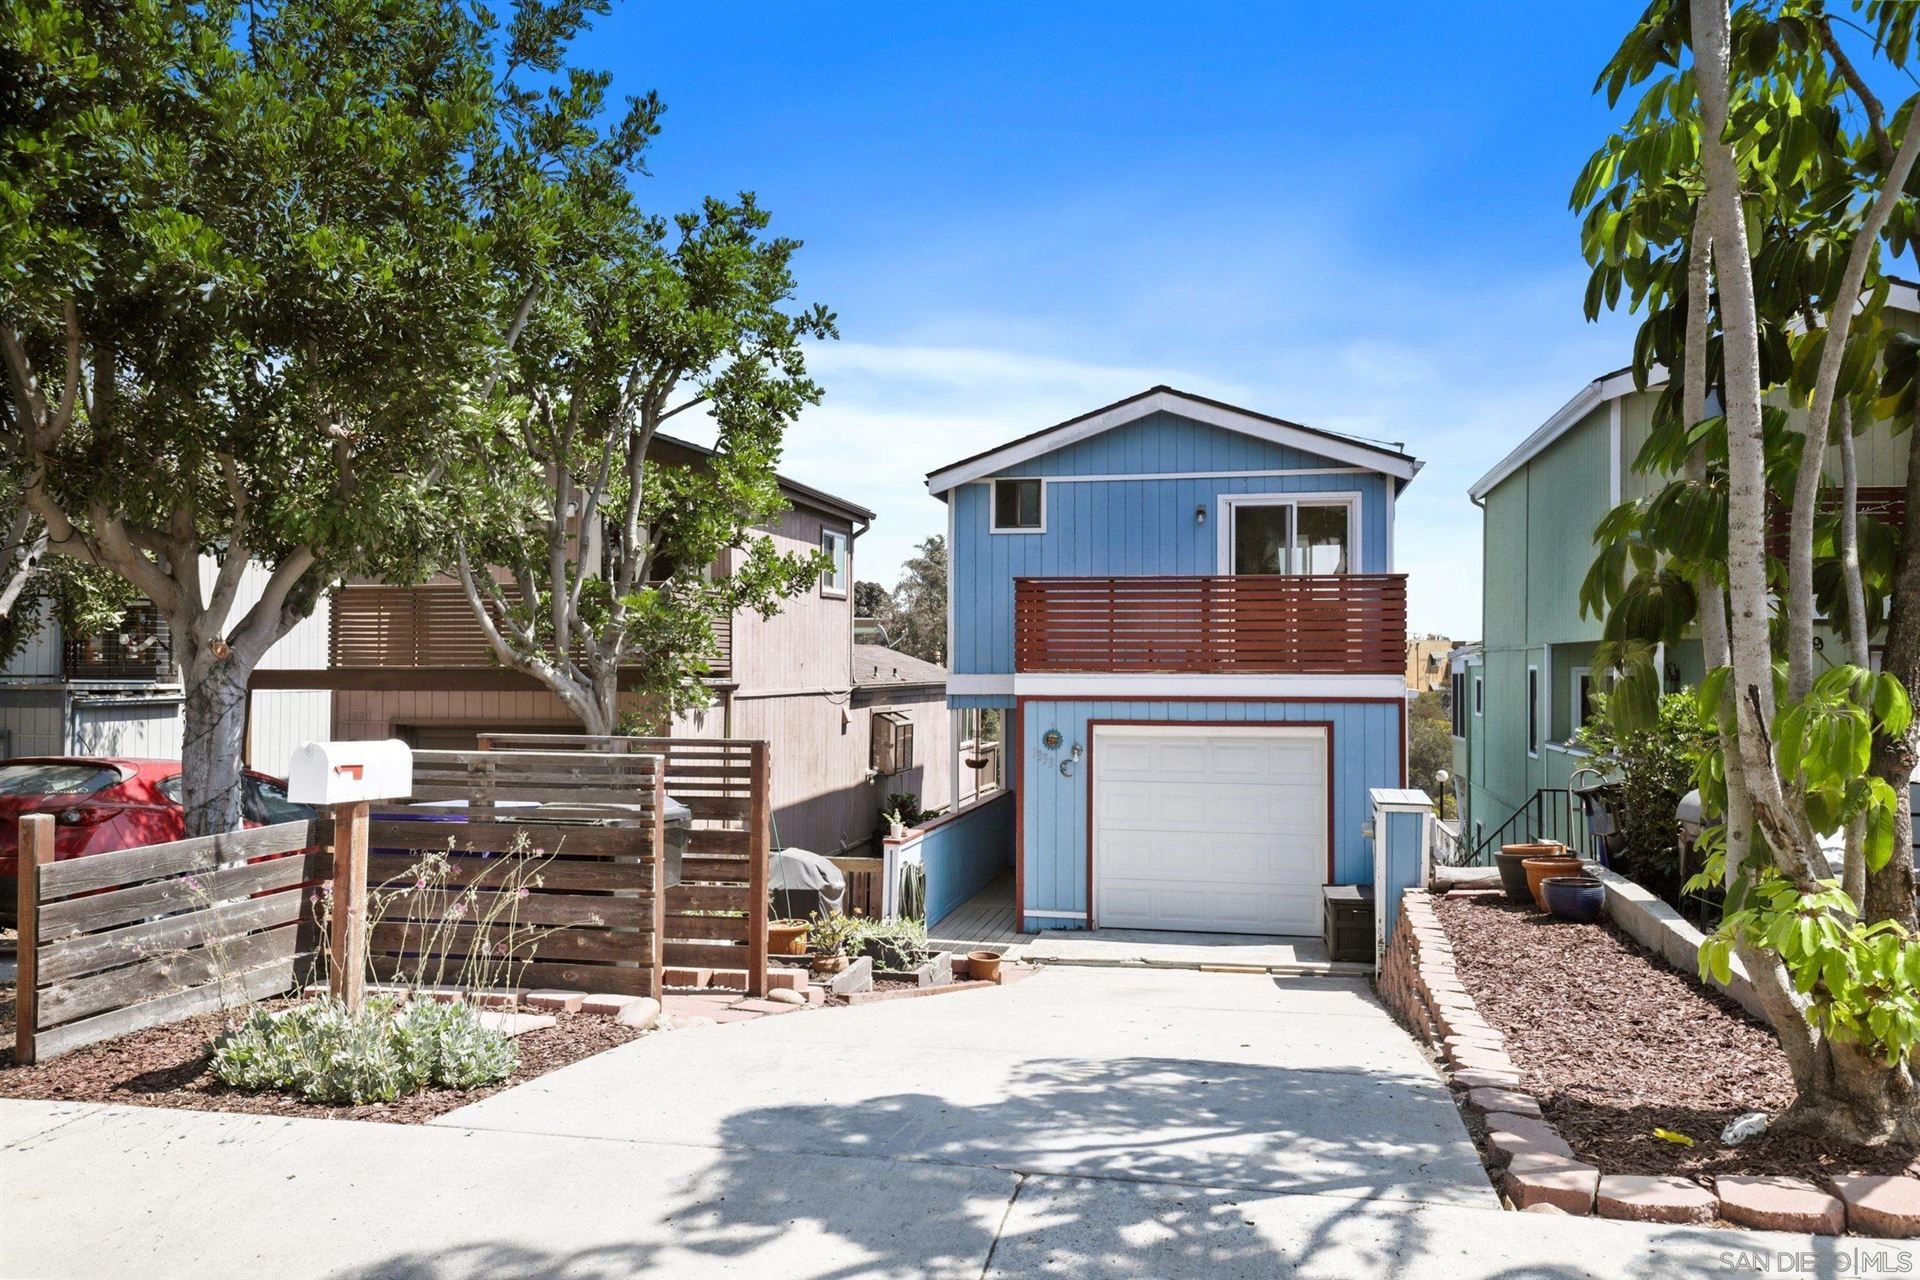 Photo for 1333 Gregory St., San Diego, CA 92102 (MLS # 210025644)